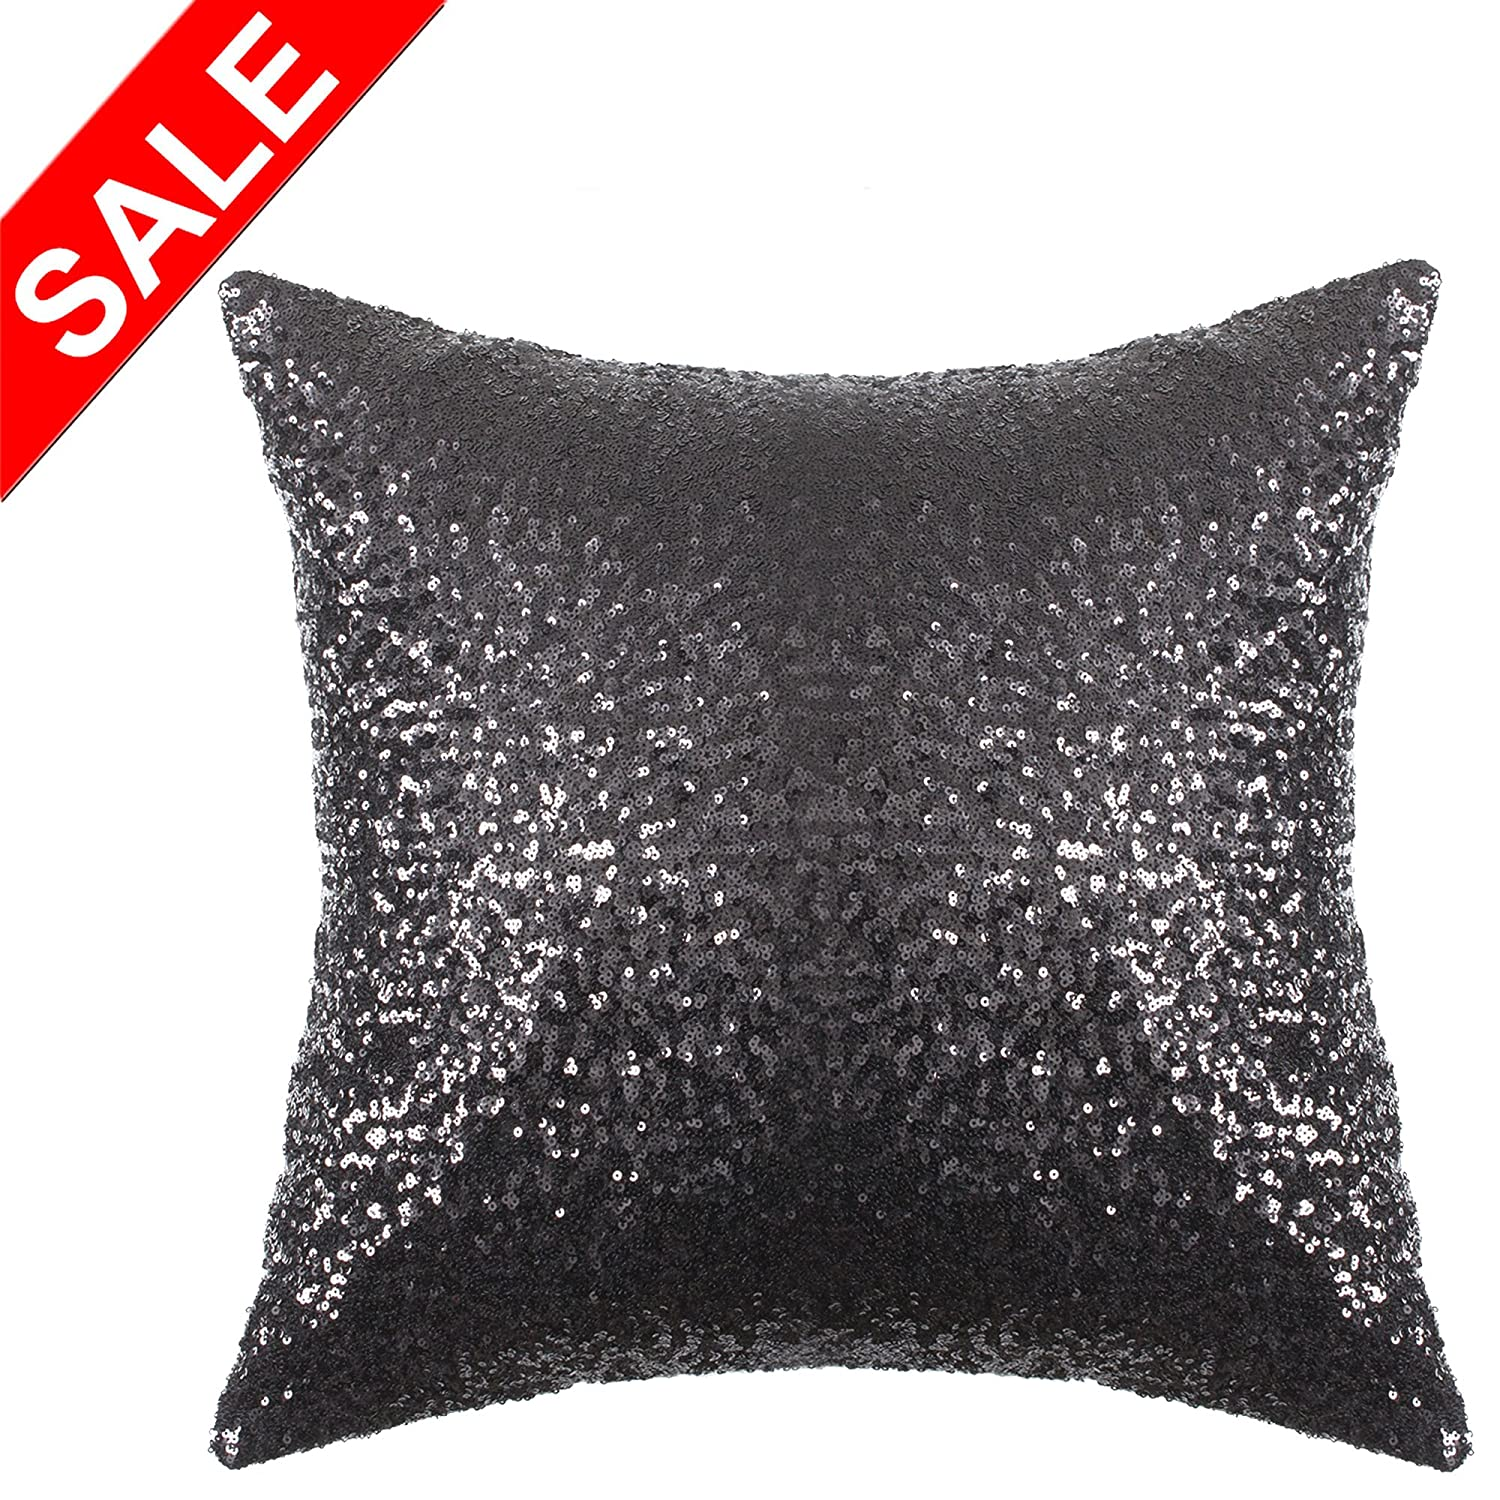 Kevin Textile Solid Bling Glitter Home Decorative Square Cushion Cover Sham Sofa/Party, 18